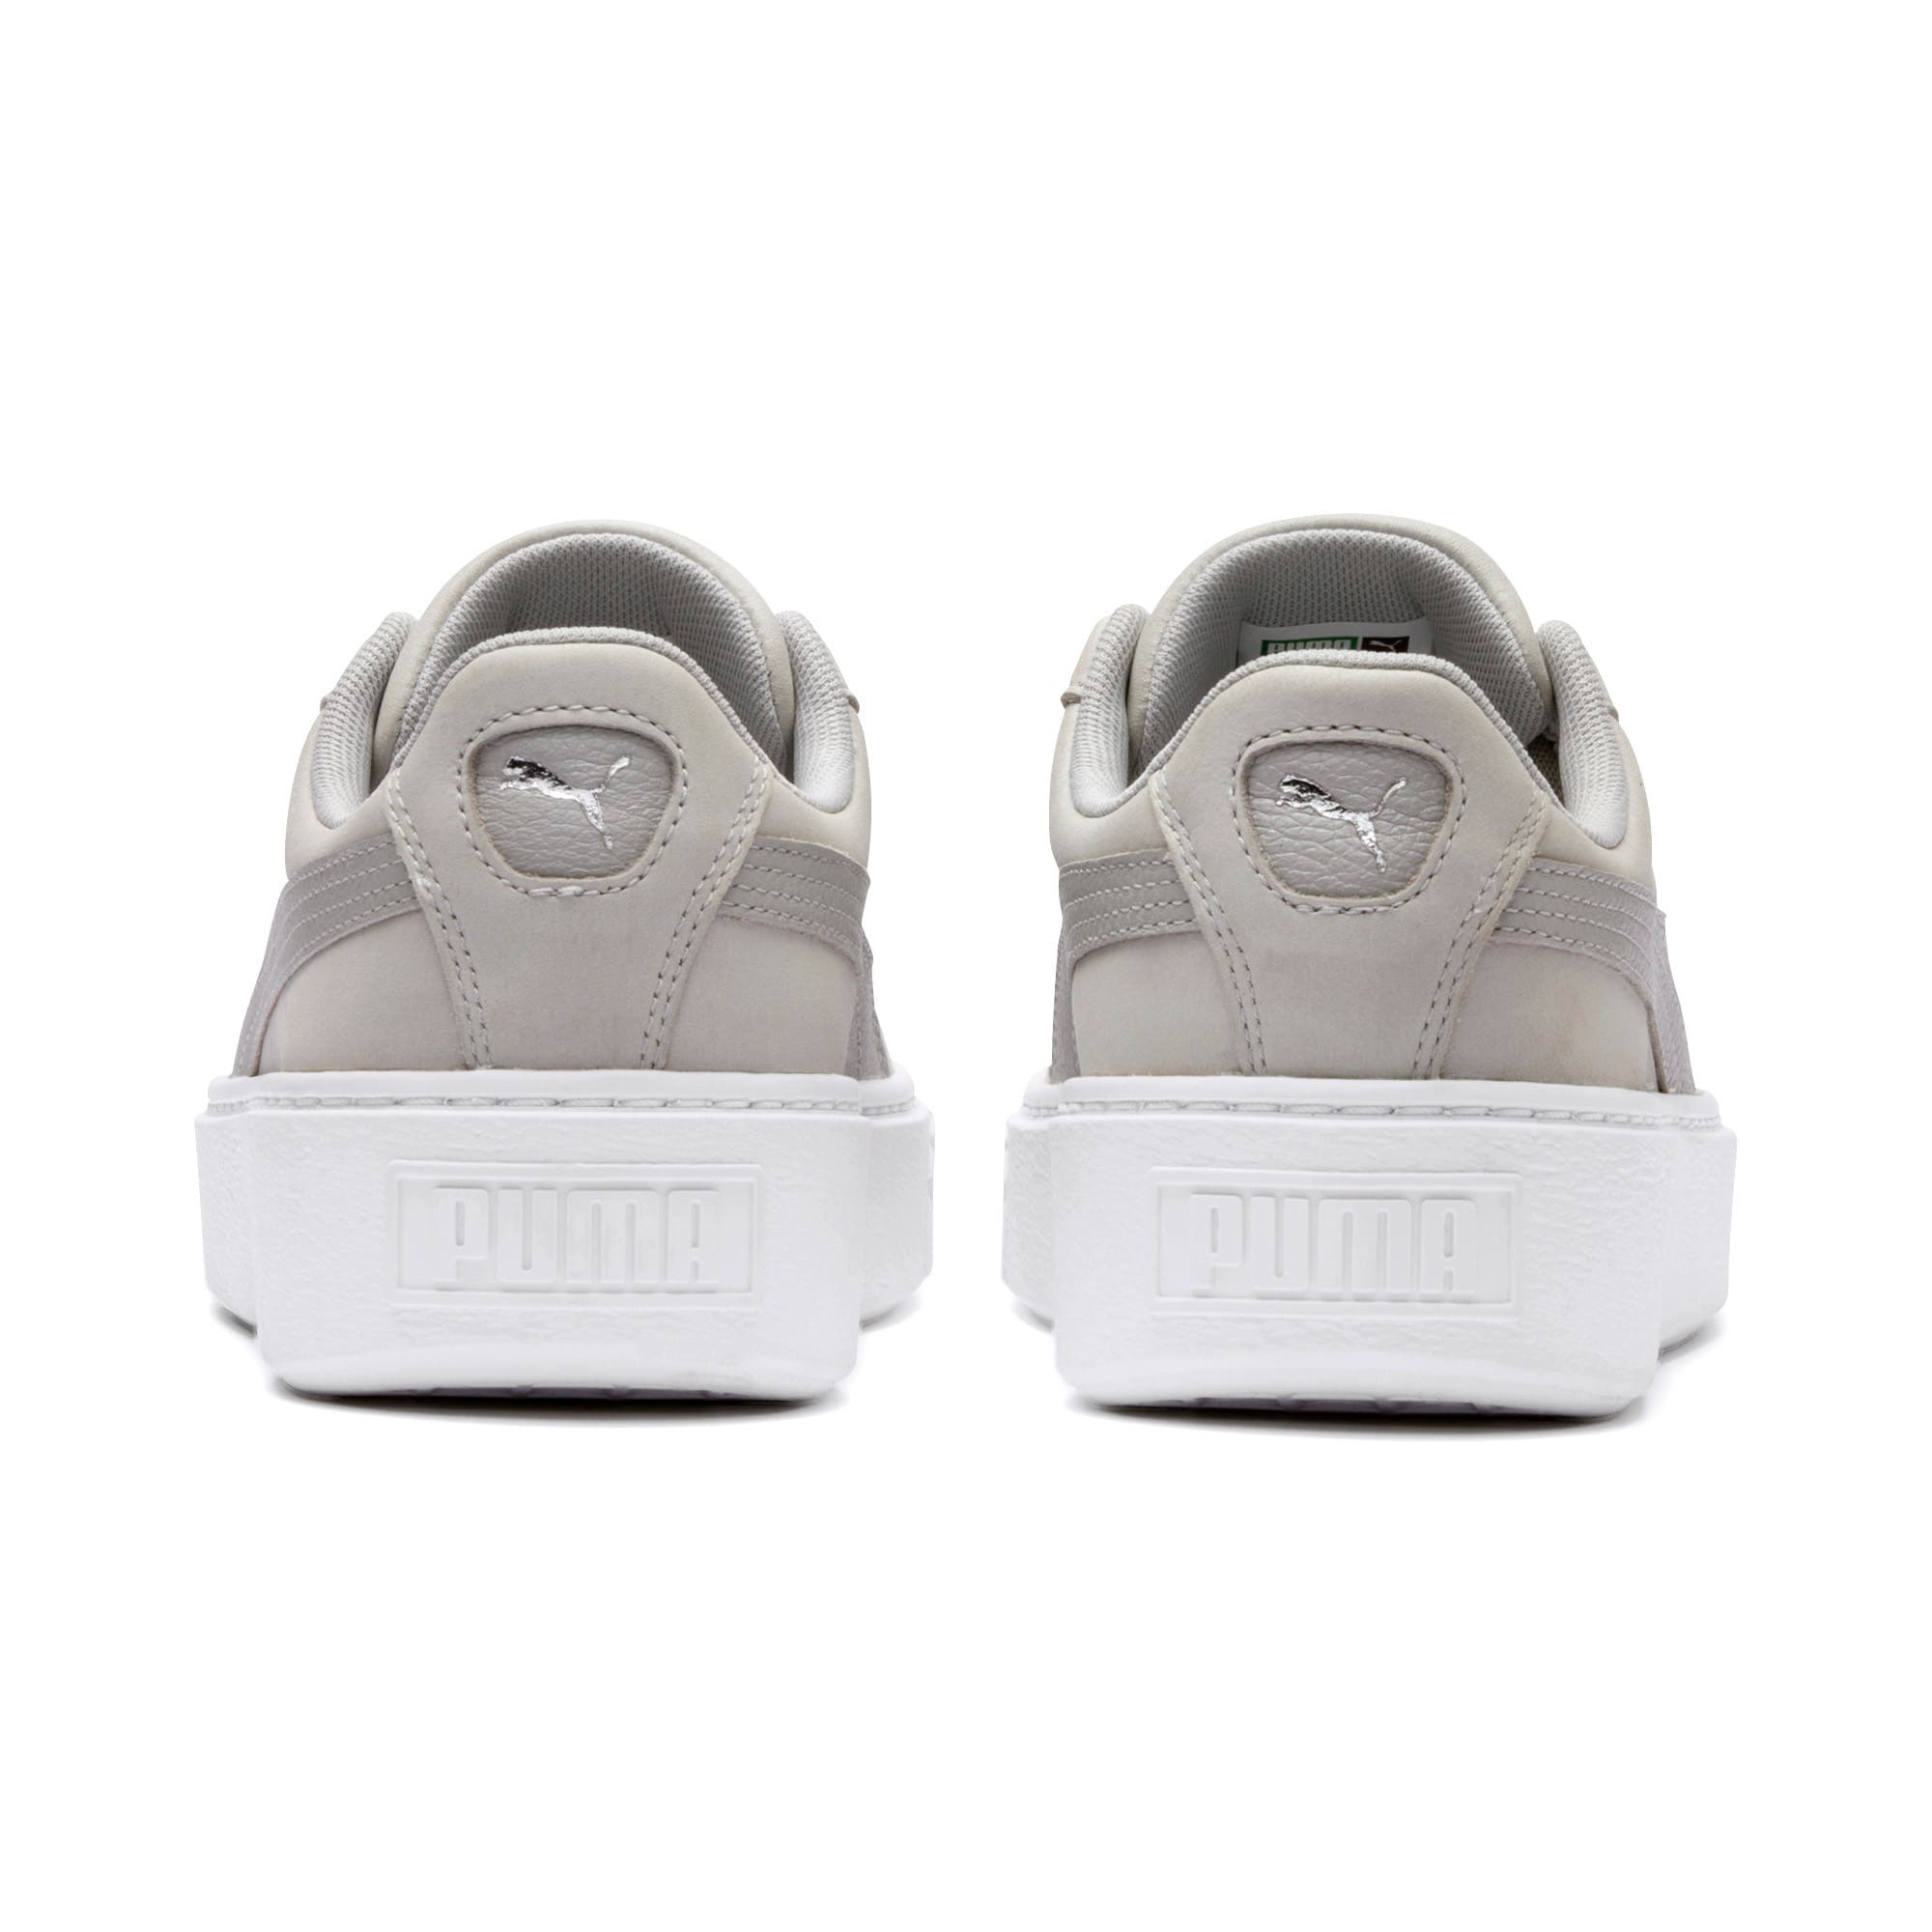 Thumbnail 4 of Suede Platform Shimmer Women's Sneakers, Gray Violet-Puma White, medium